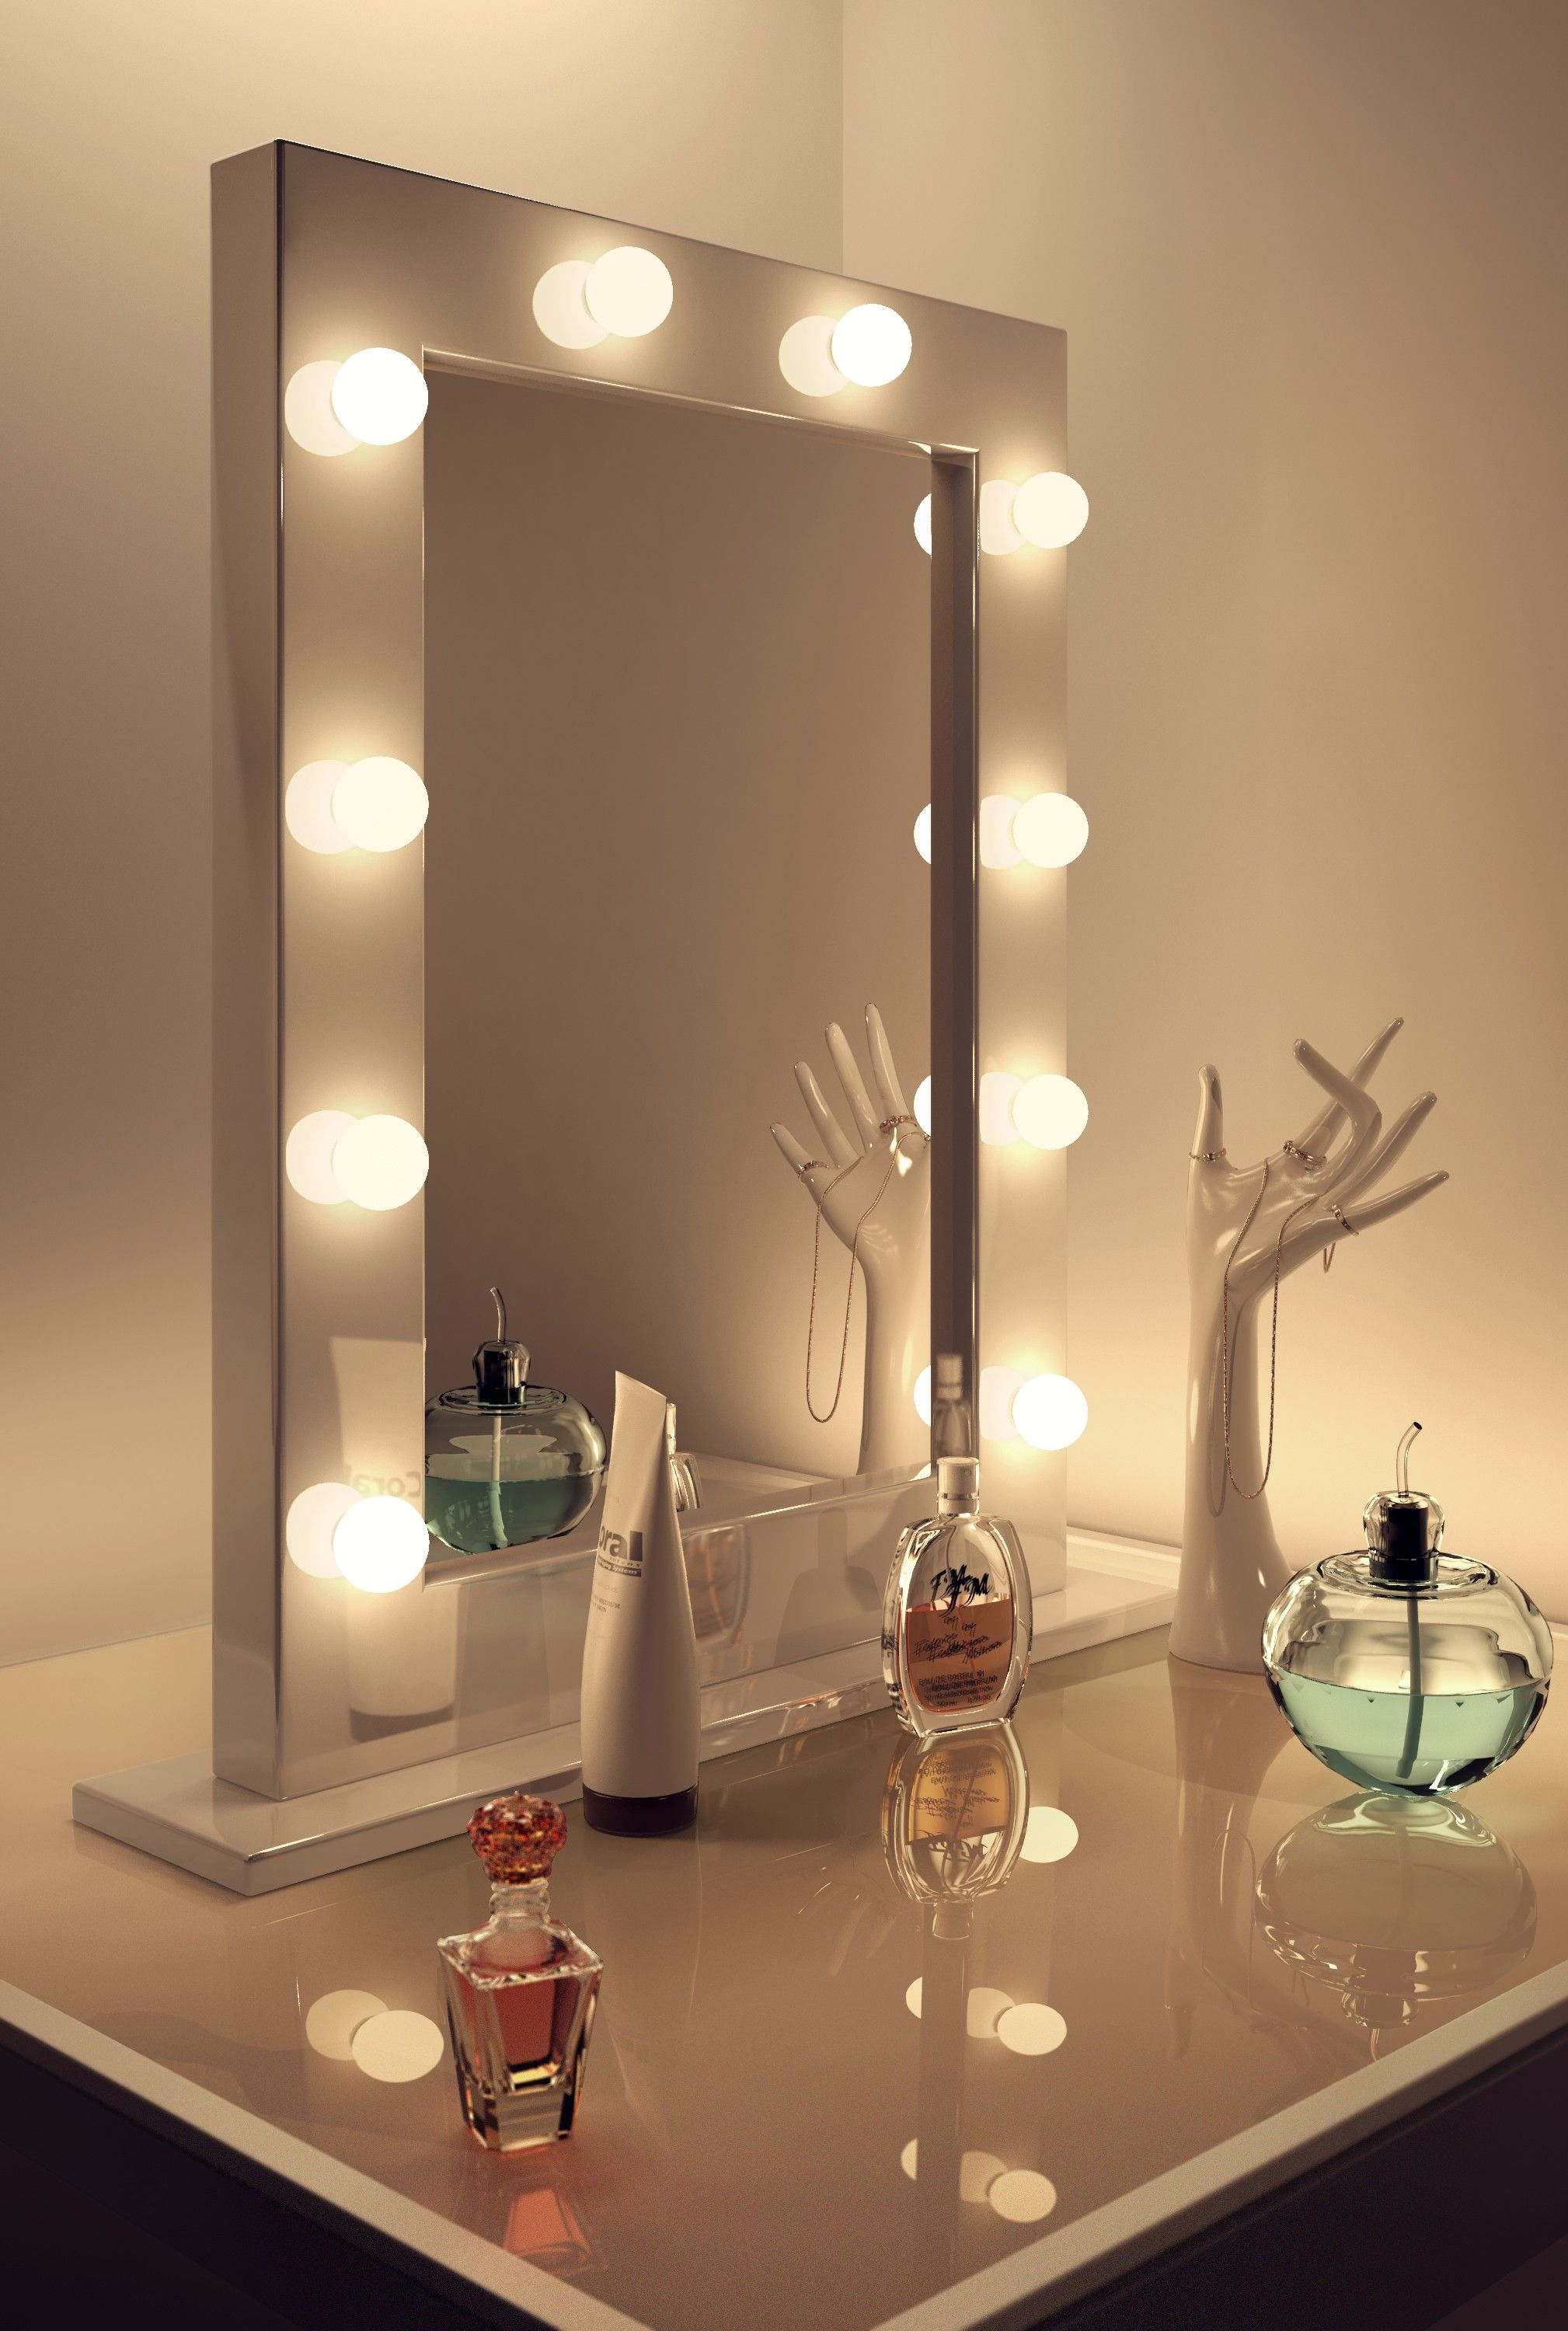 Vanity Mirrors Diy Vanity Mirror Ideas To Make Your Room More Beautiful